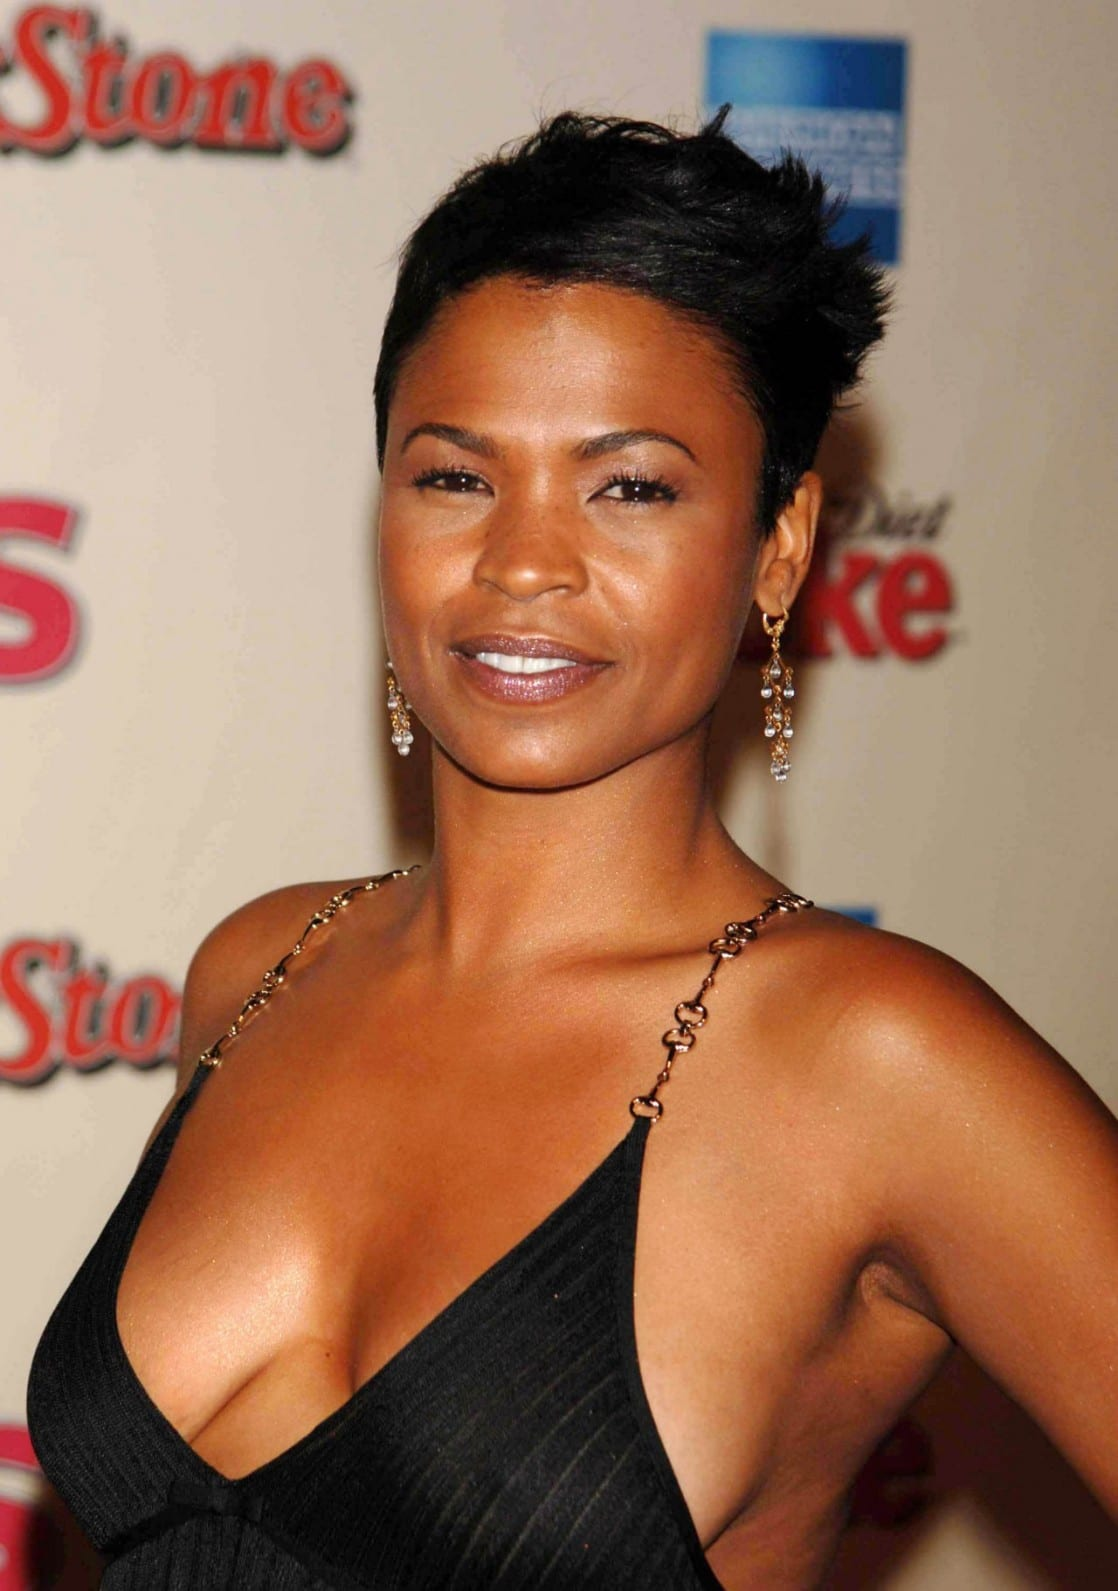 Nia long nude picture n sex porn agree with